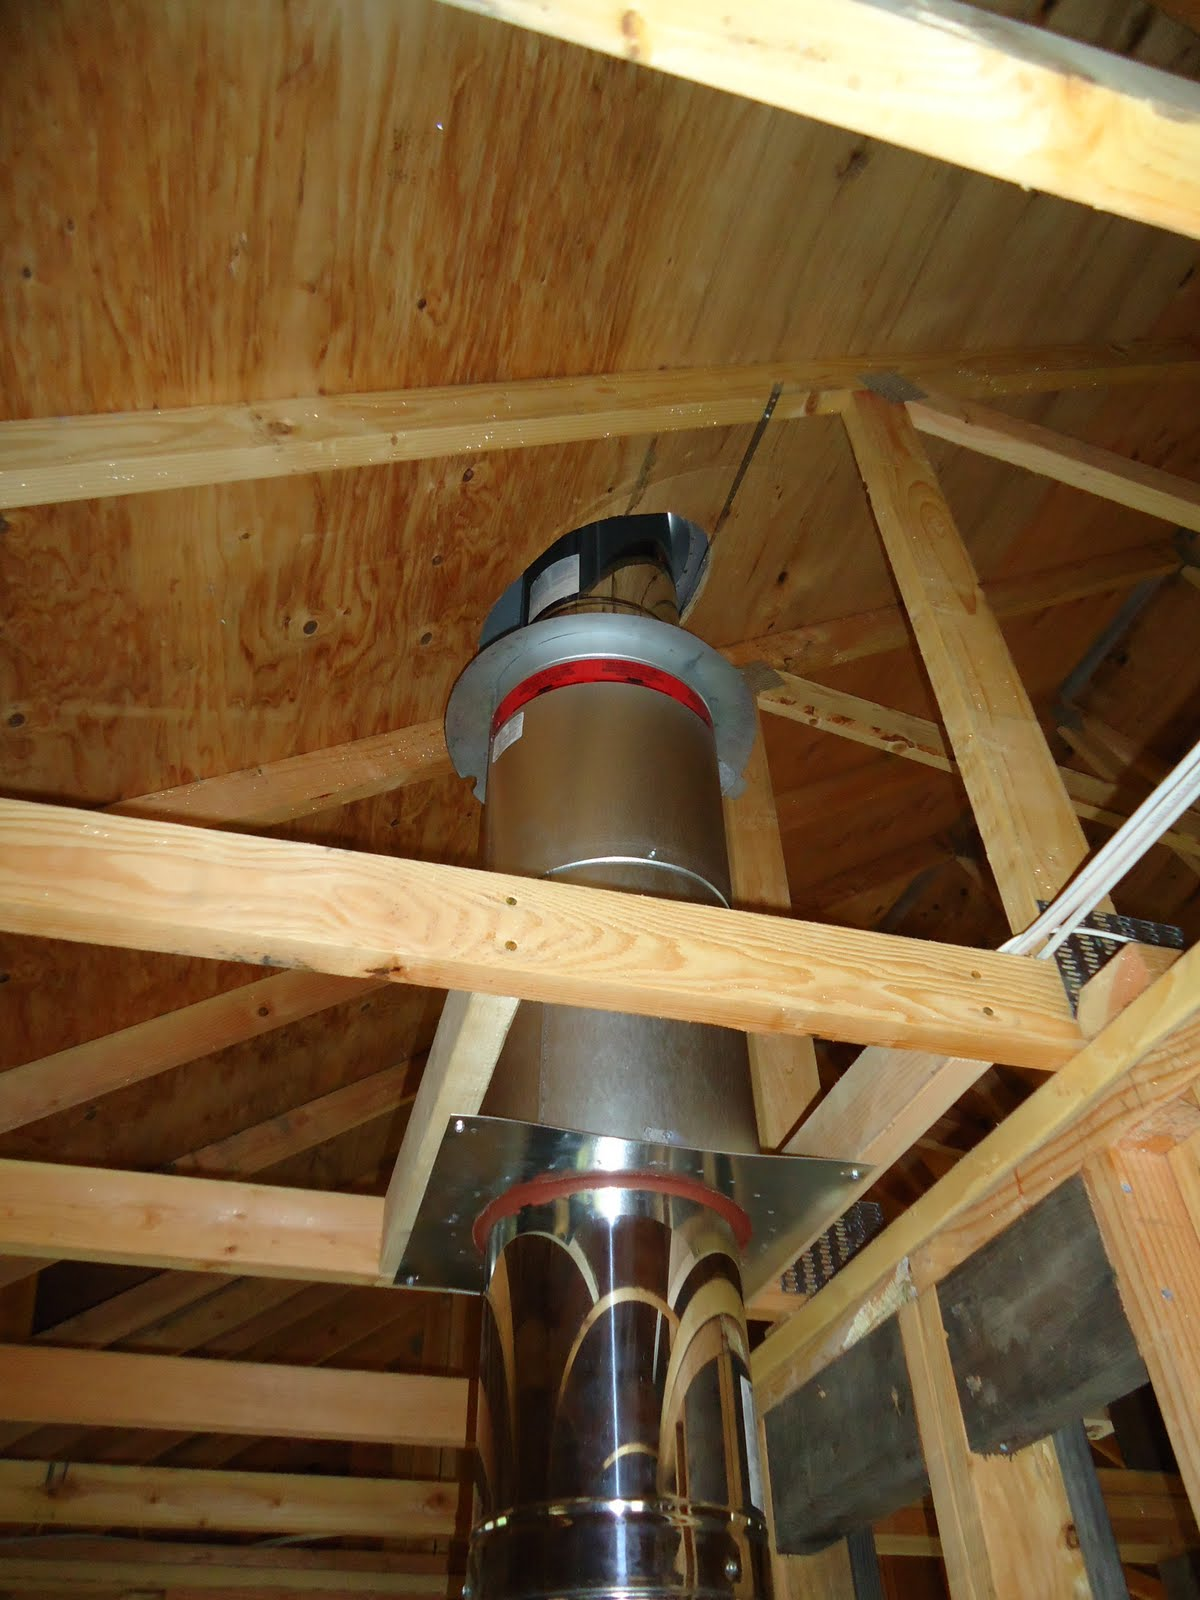 Stove Pipe Through Roof & Stove Pipe: Stove Pipe Through Roof